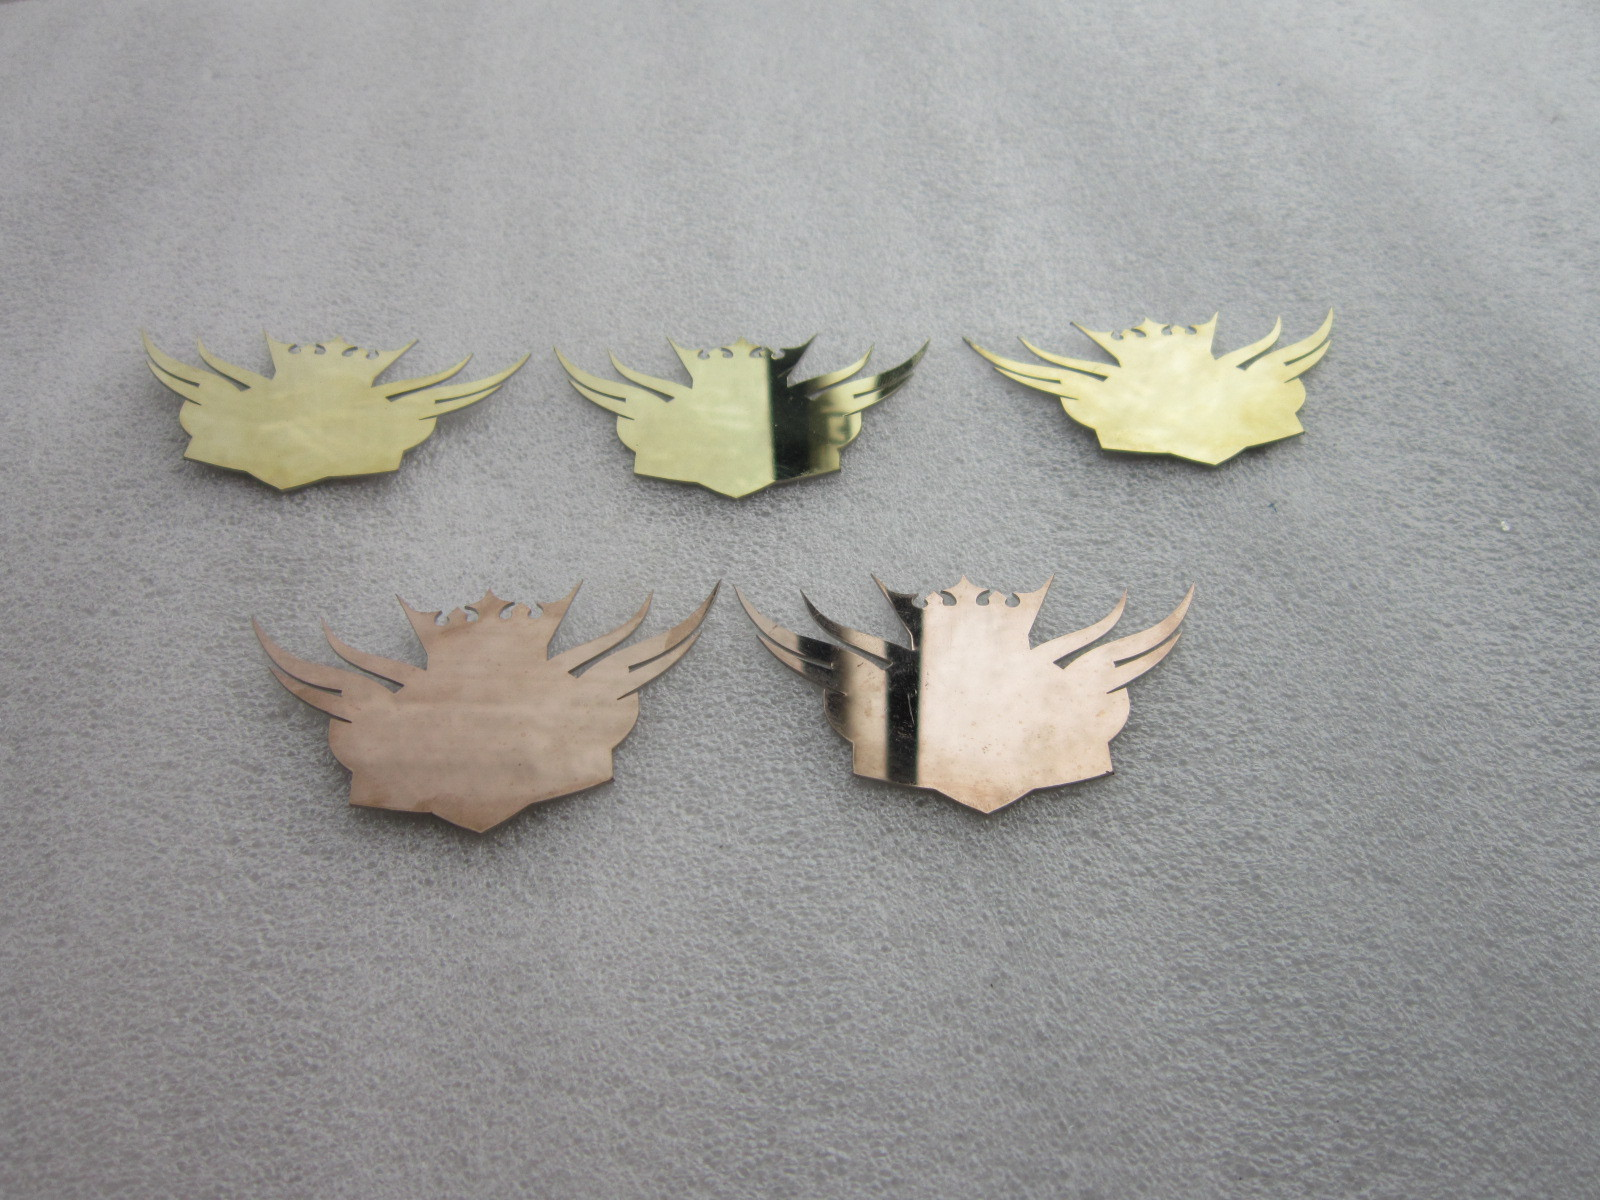 Metal decoration laser cutting in polishing surface or mirrored treatment